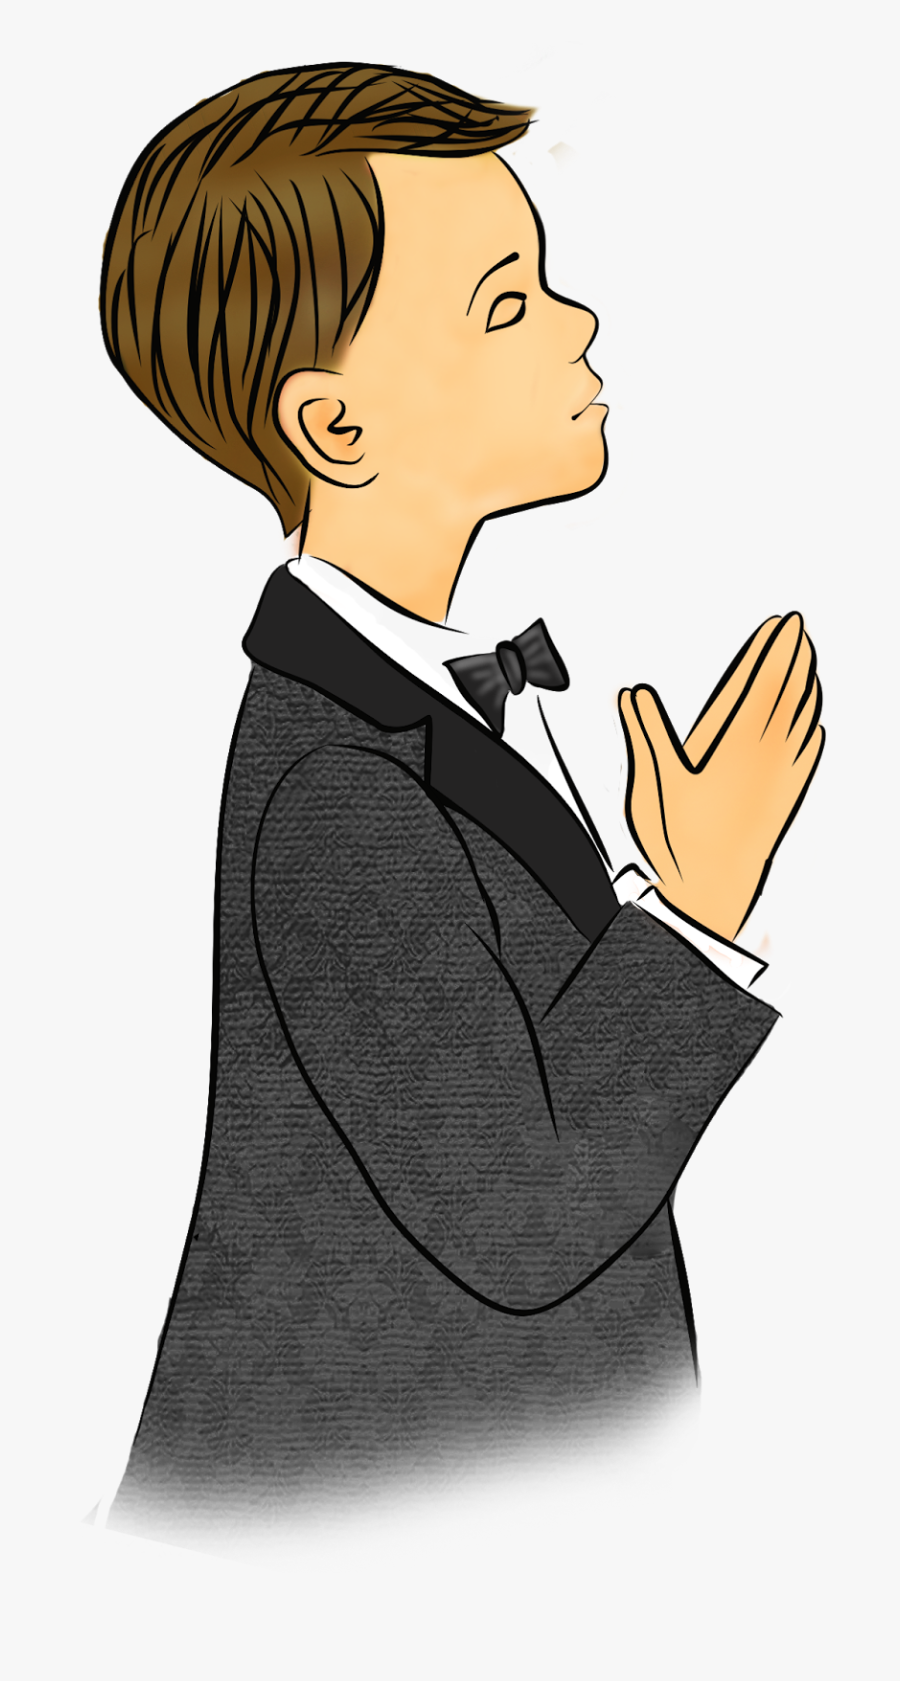 Transparent Communion Clip Art - First Holy Communion Boy Clipart, Transparent Clipart